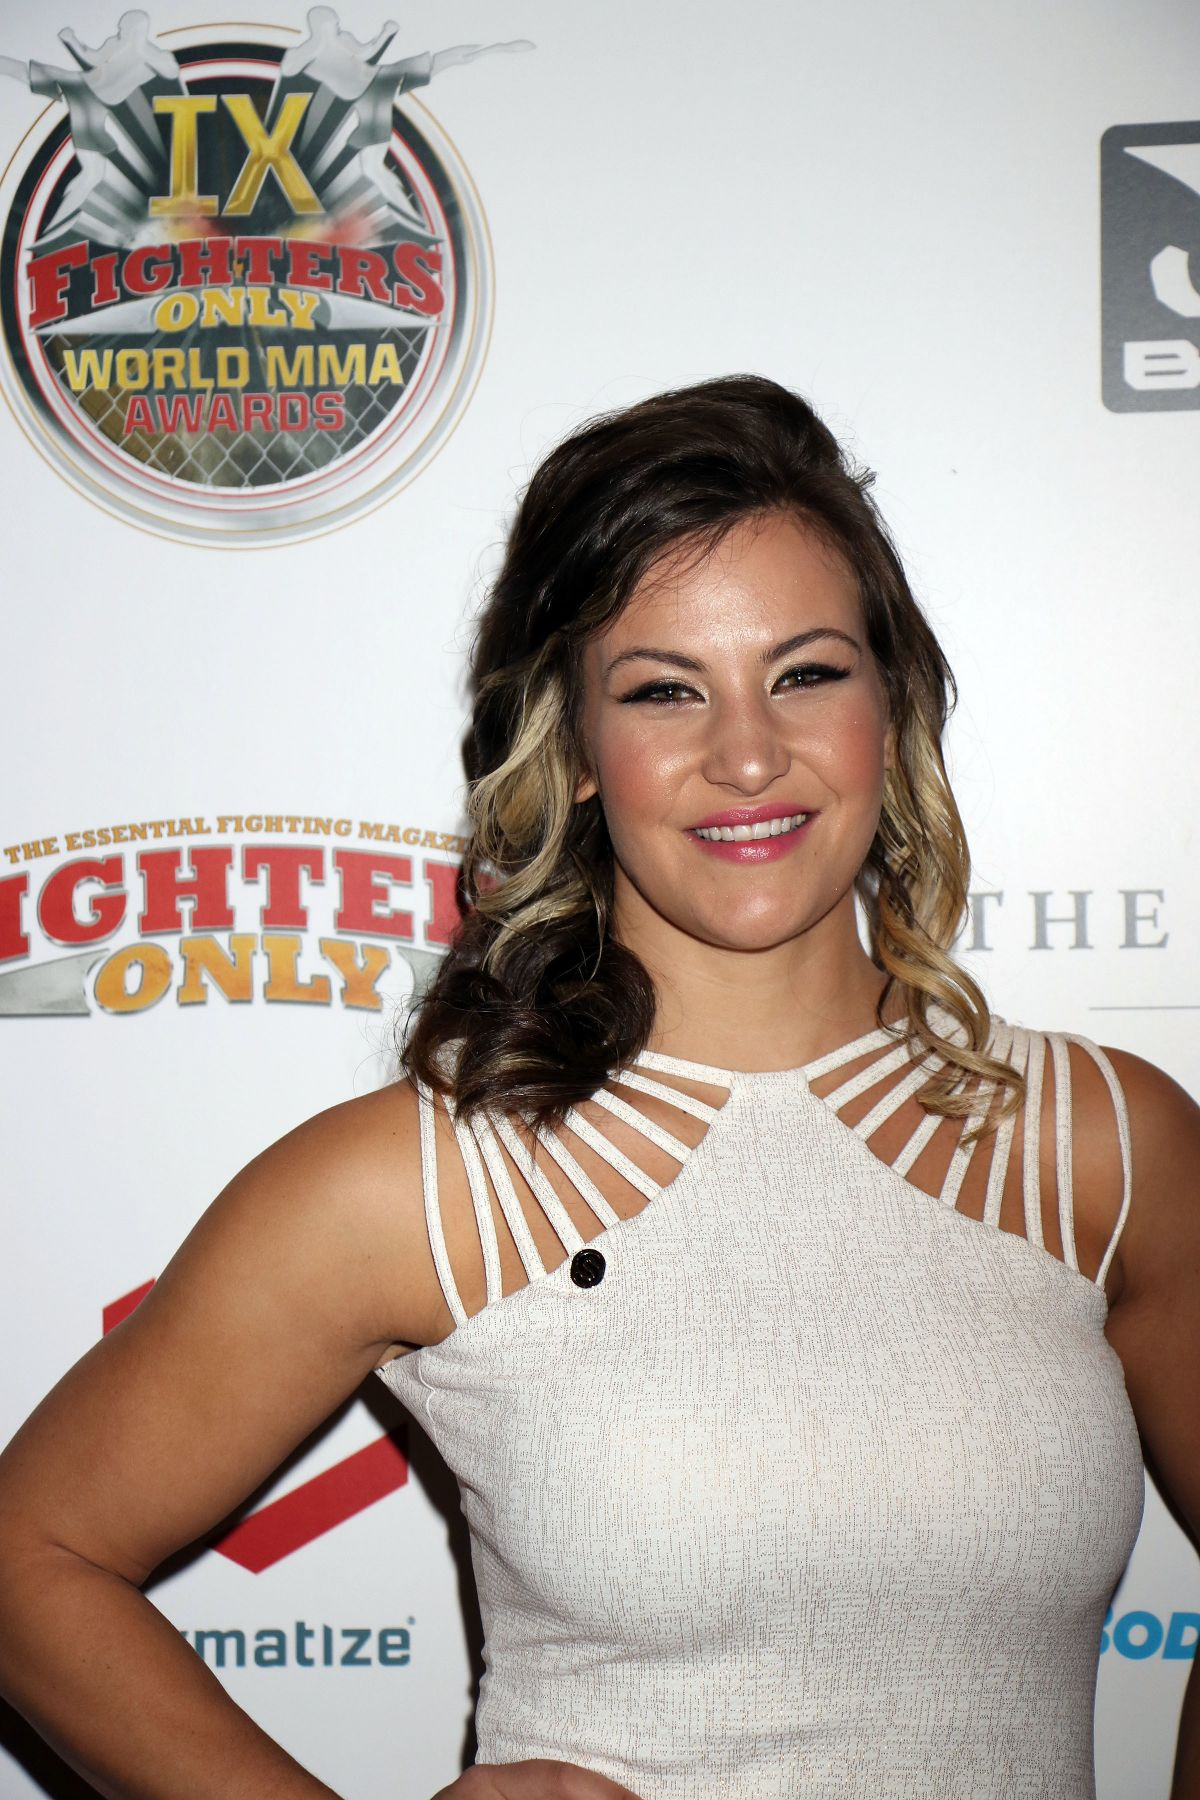 MIESHA TATE at 9th Annual Fighters Only World Mixed Martial Arts Awards in Las Vegas 03/02/2017